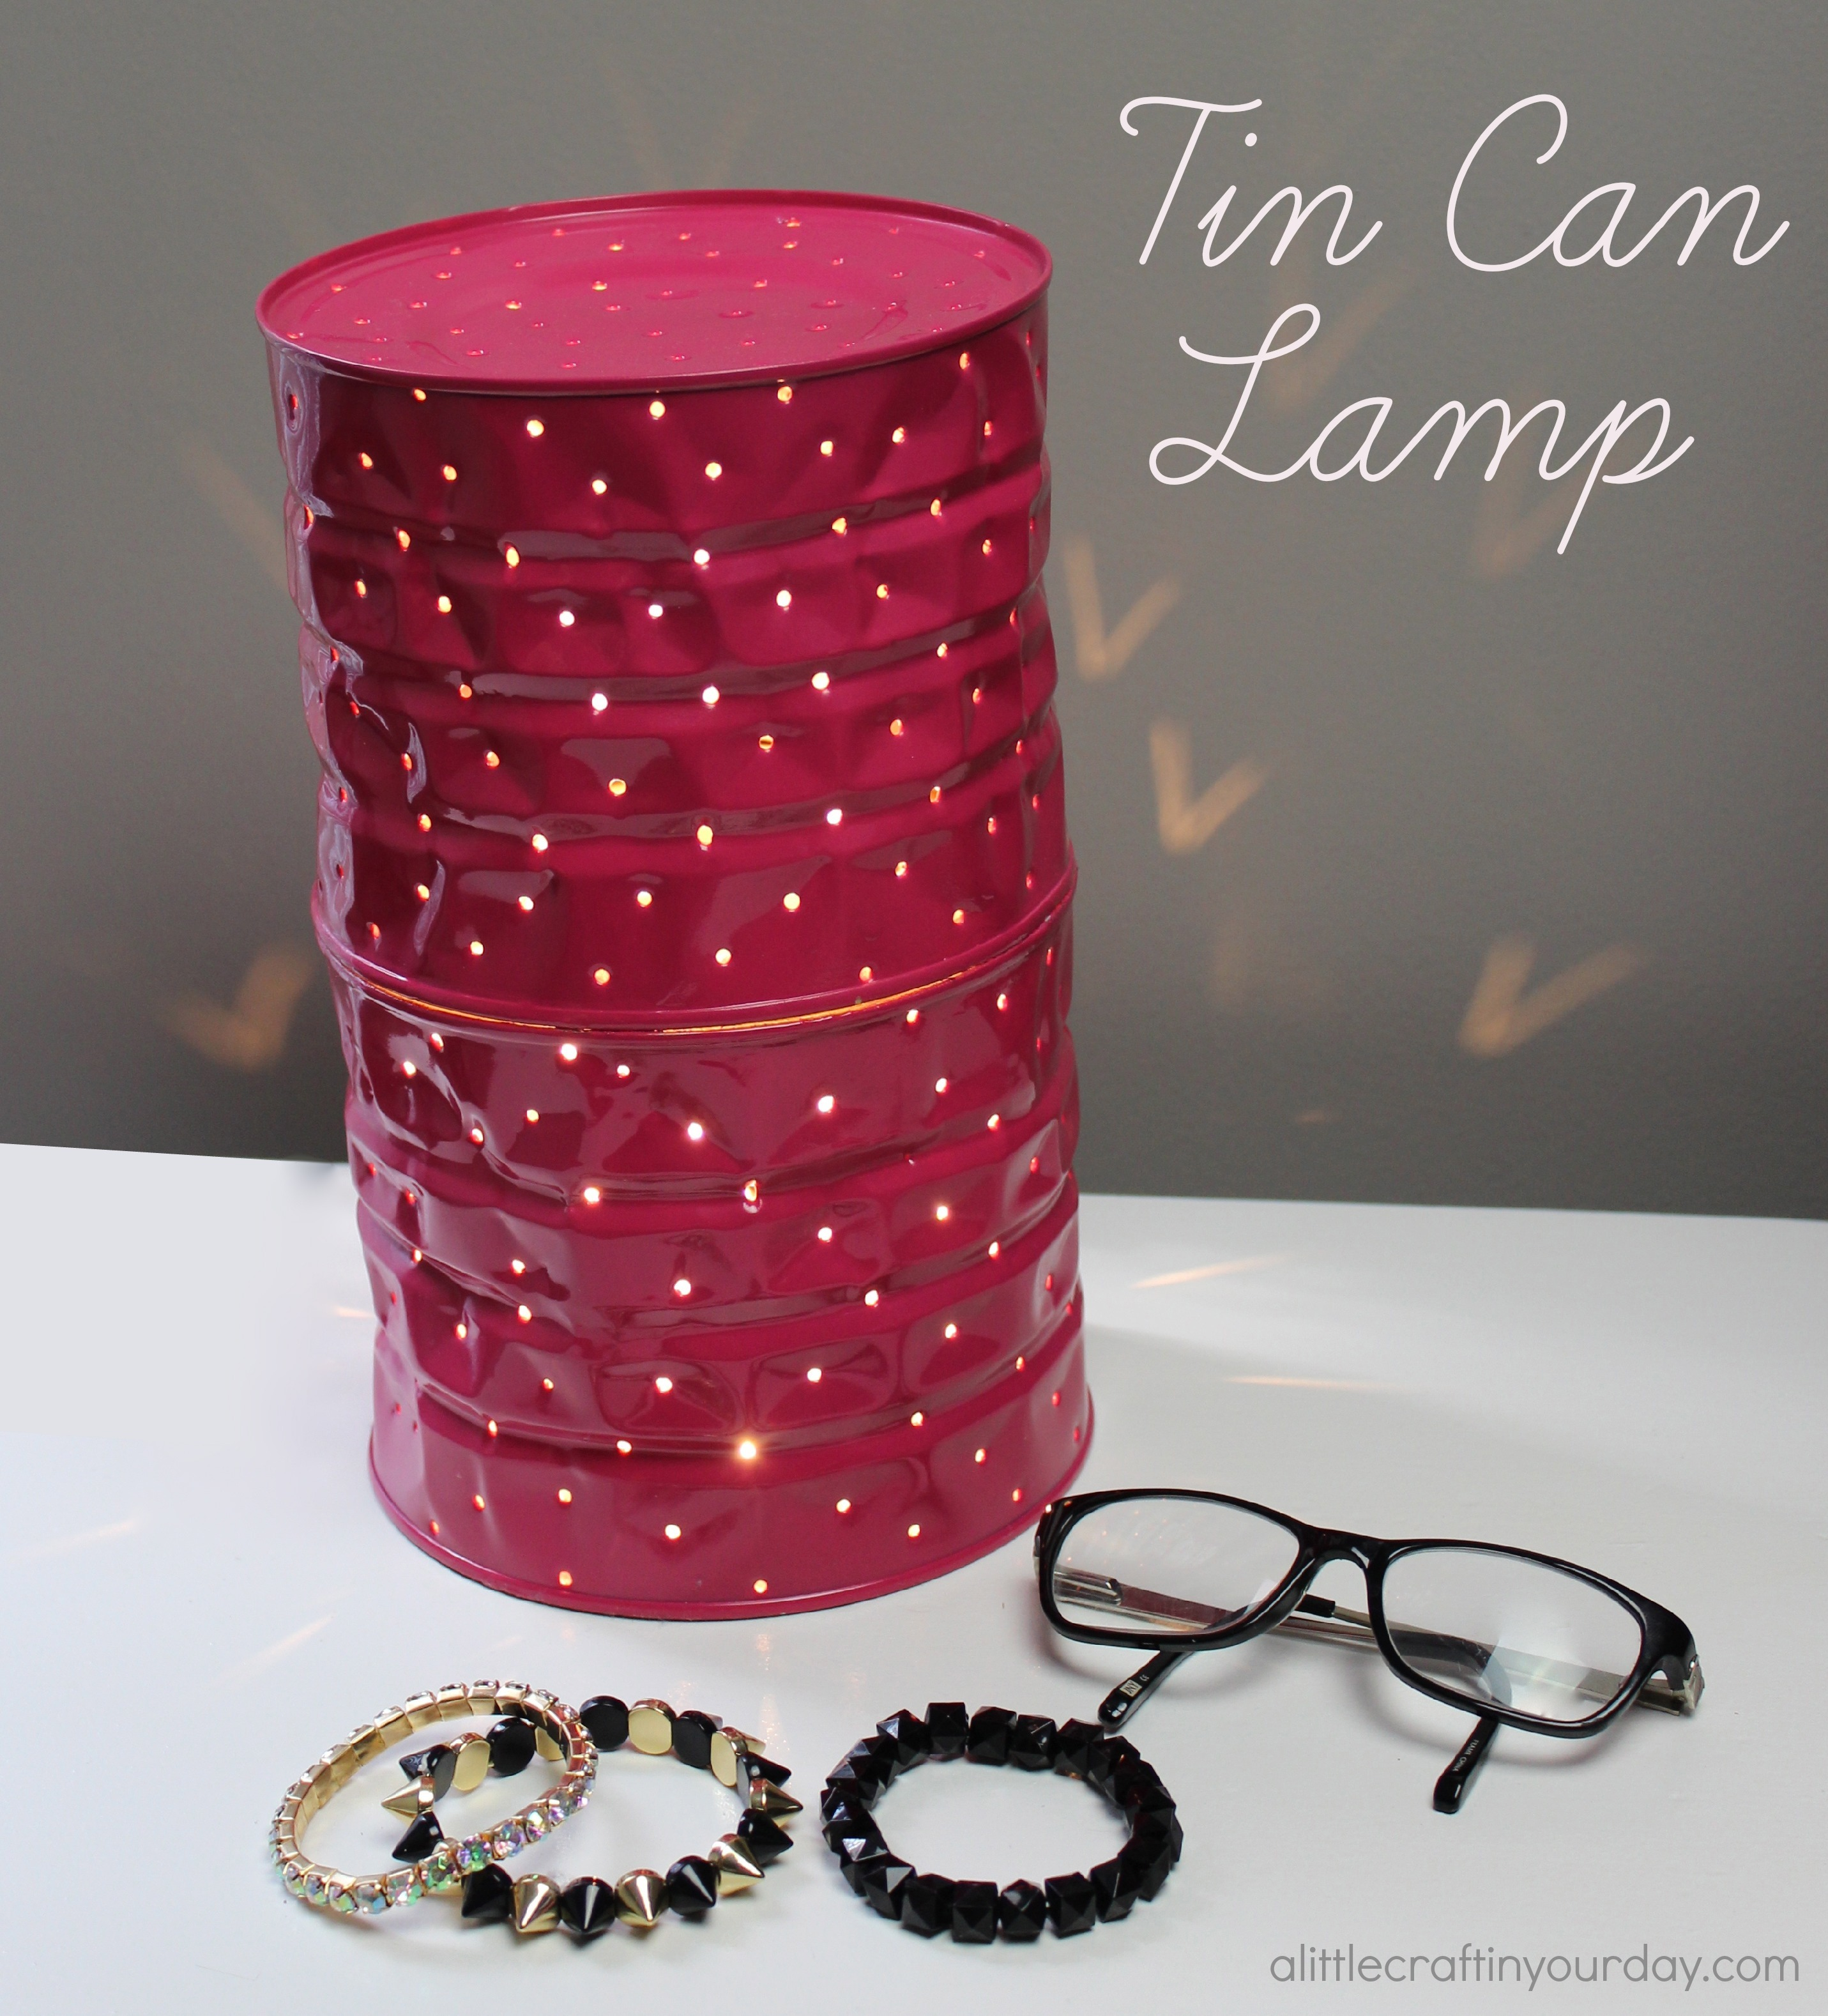 Tin can lamp a little craft in your day for Tin cans for crafts